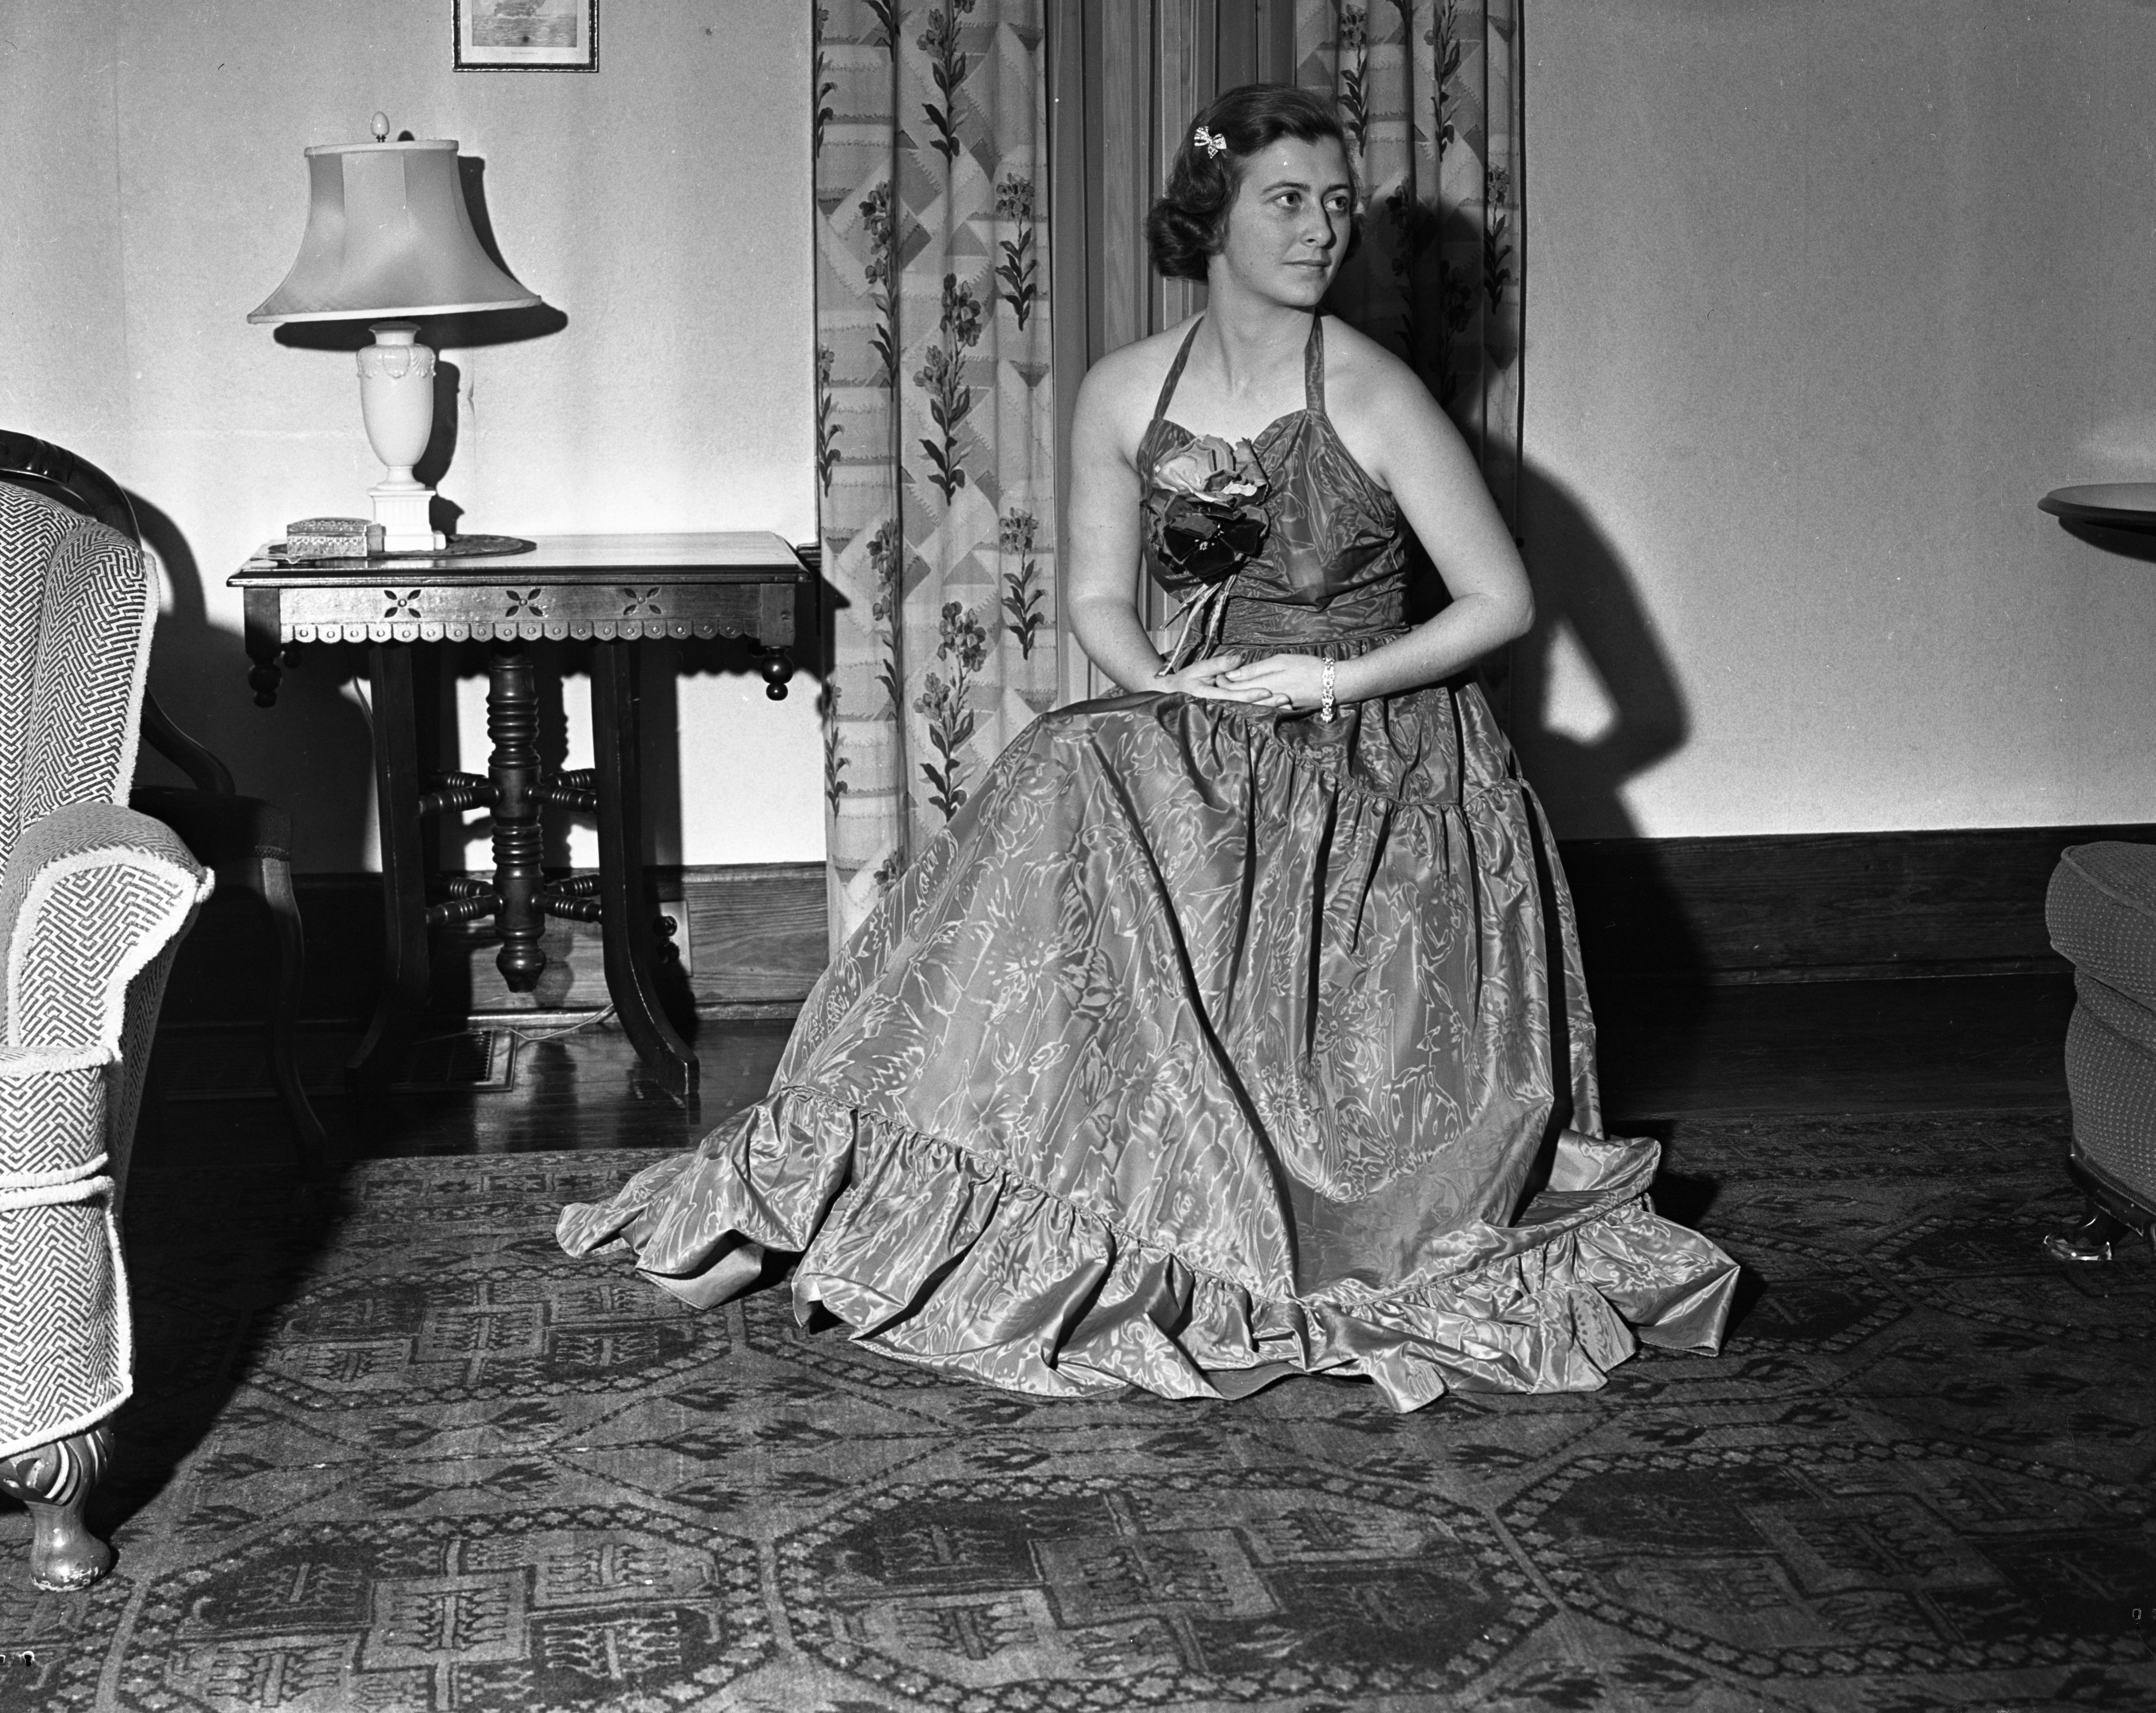 Betty Farris in formal gown, 1939 image